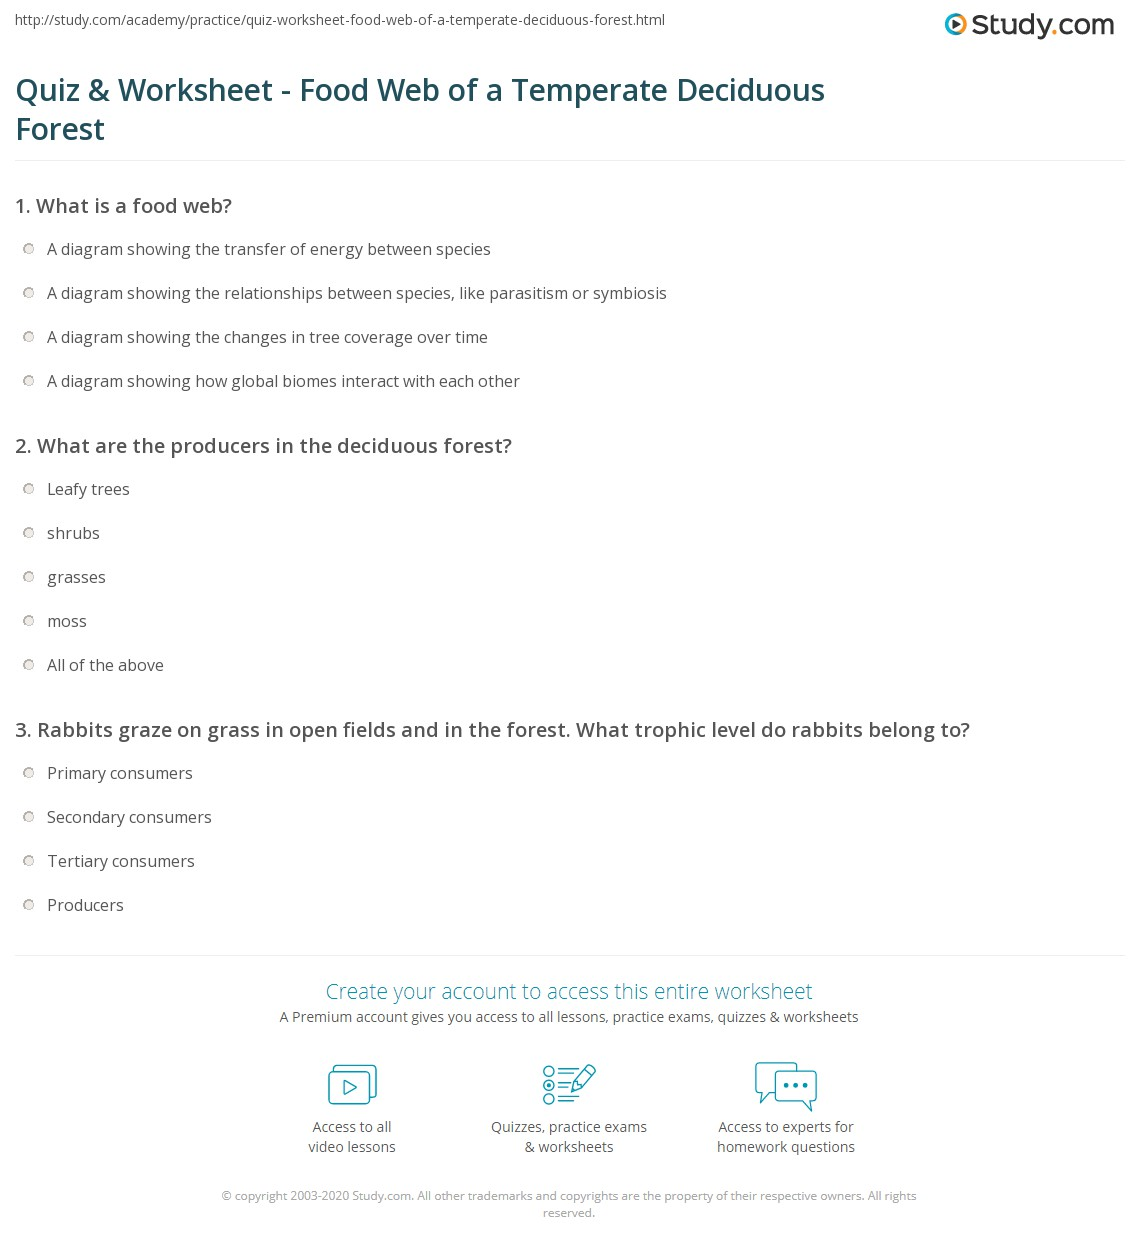 temperate forest food web diagram ant nest quiz and worksheet of a deciduous